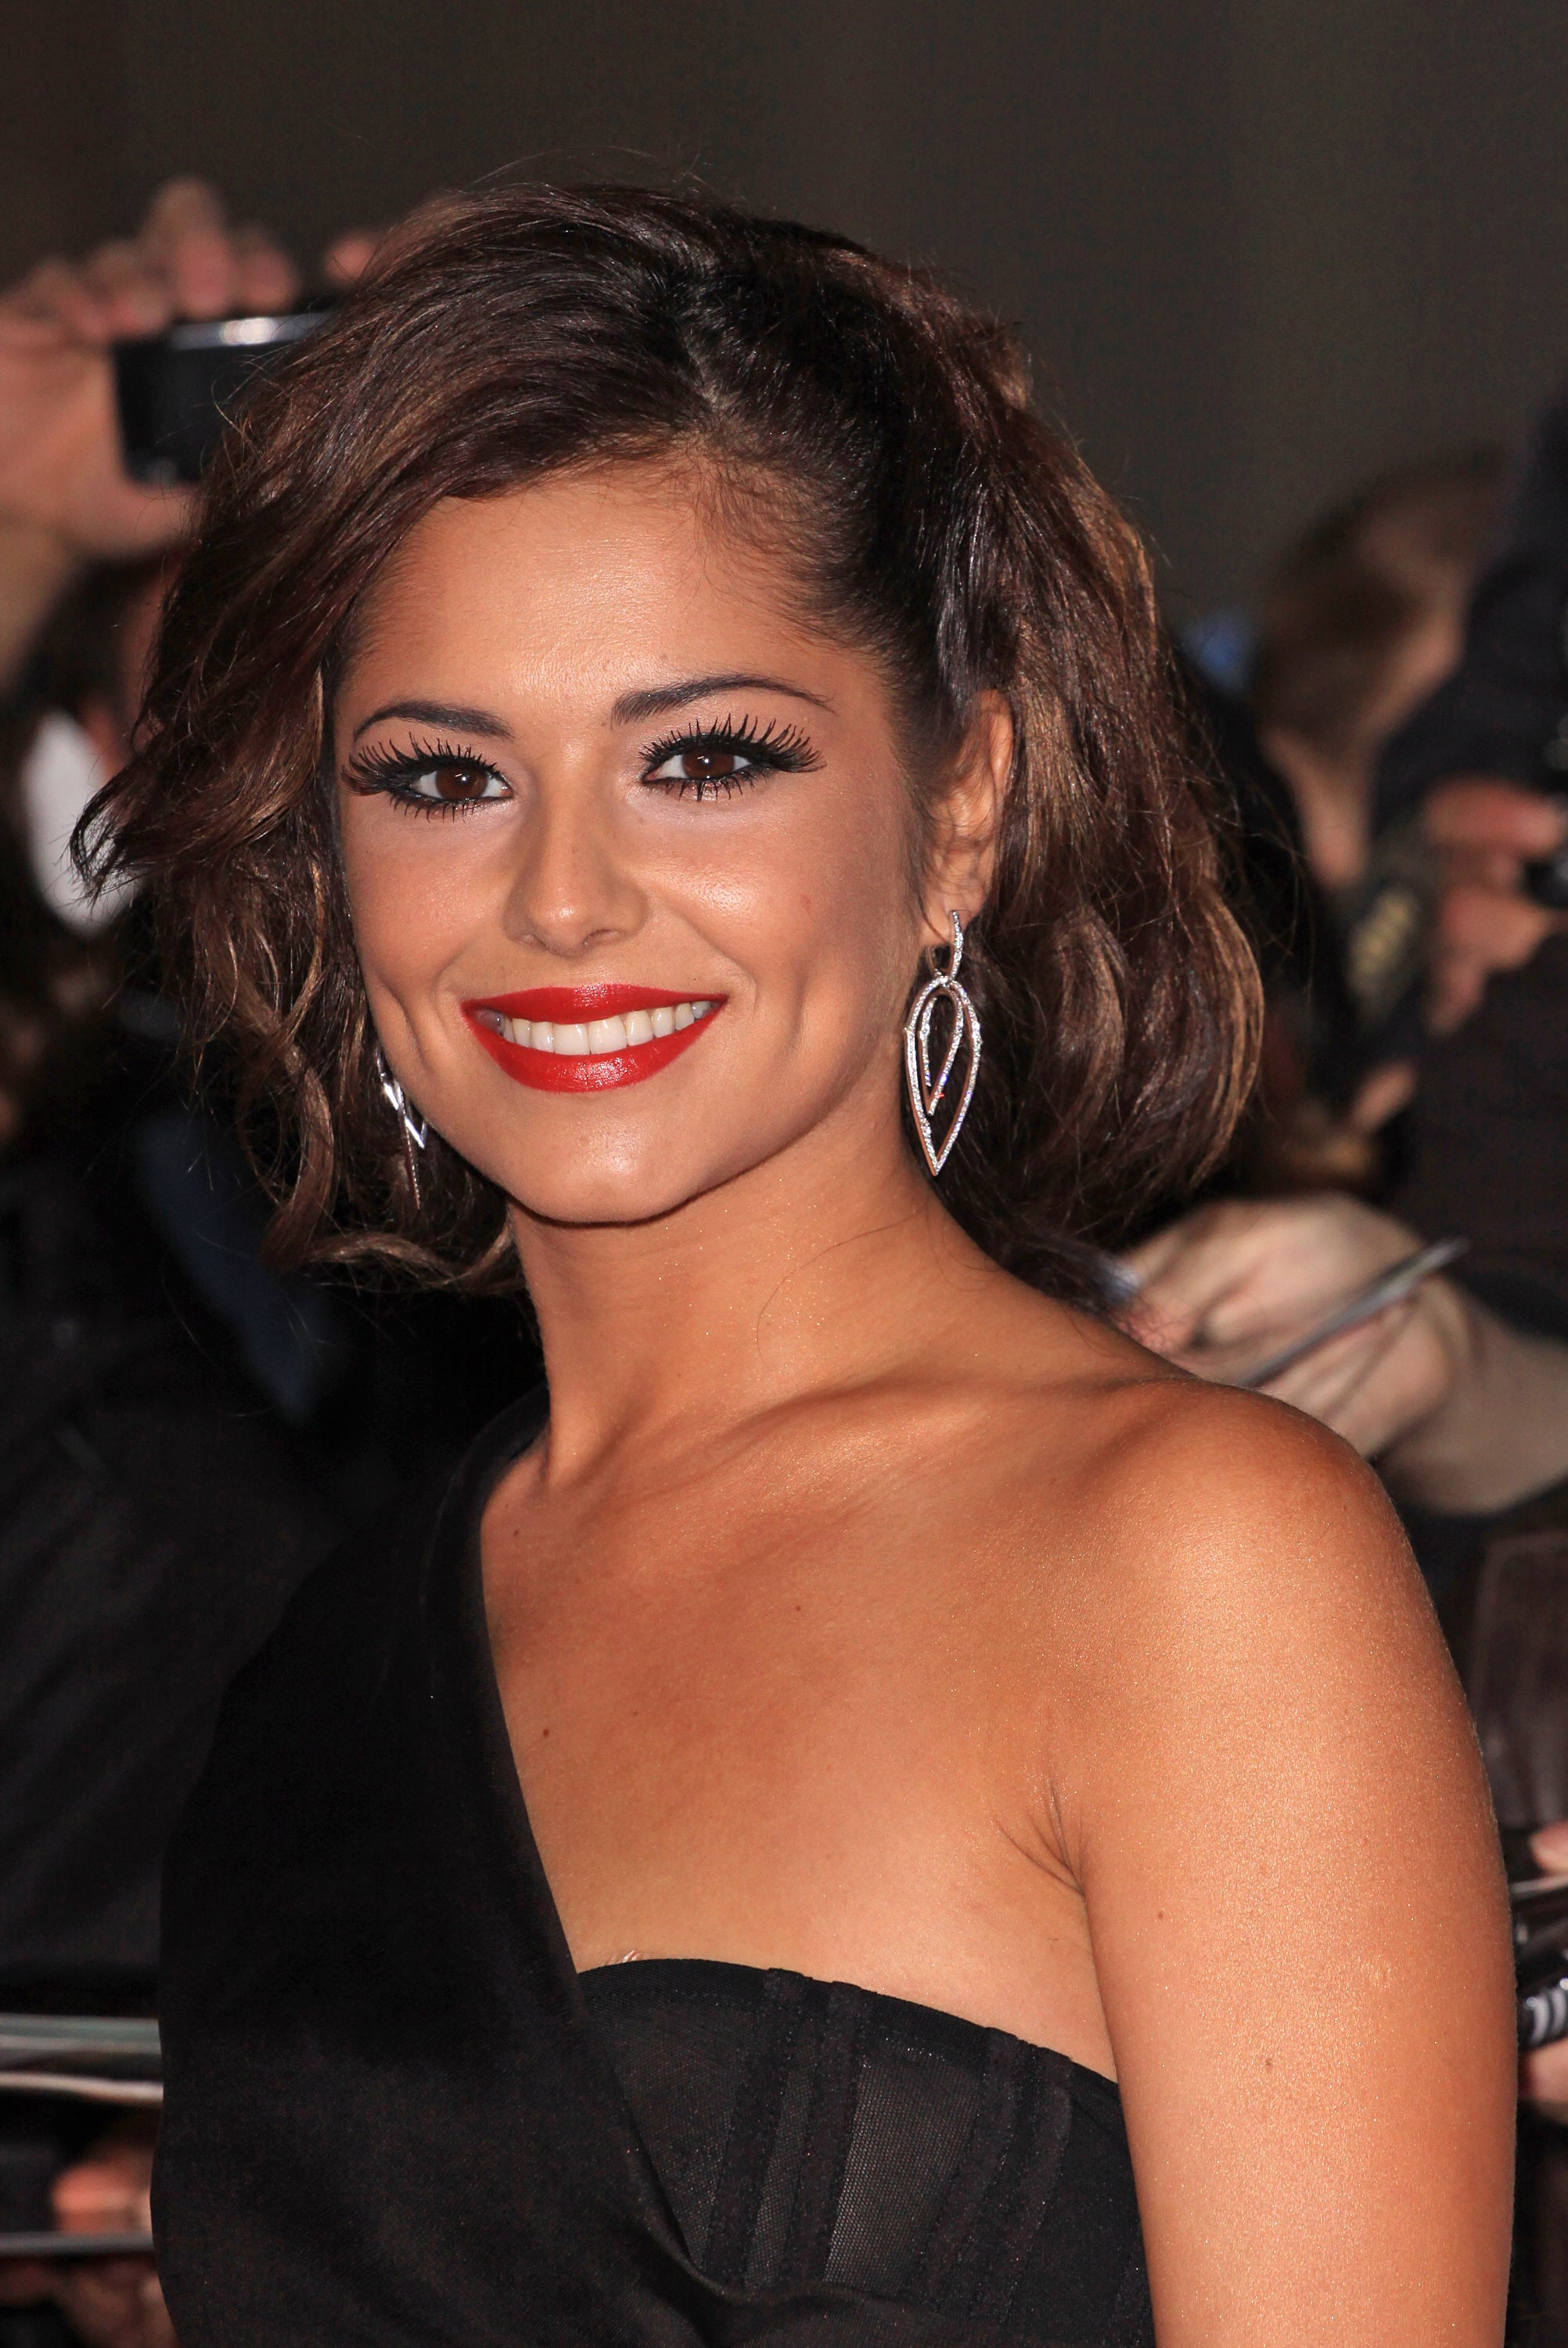 Cheryl Cole Hair 2009-10-06 06:00:00 | POPSUGAR Beauty UK Cheryl Cole